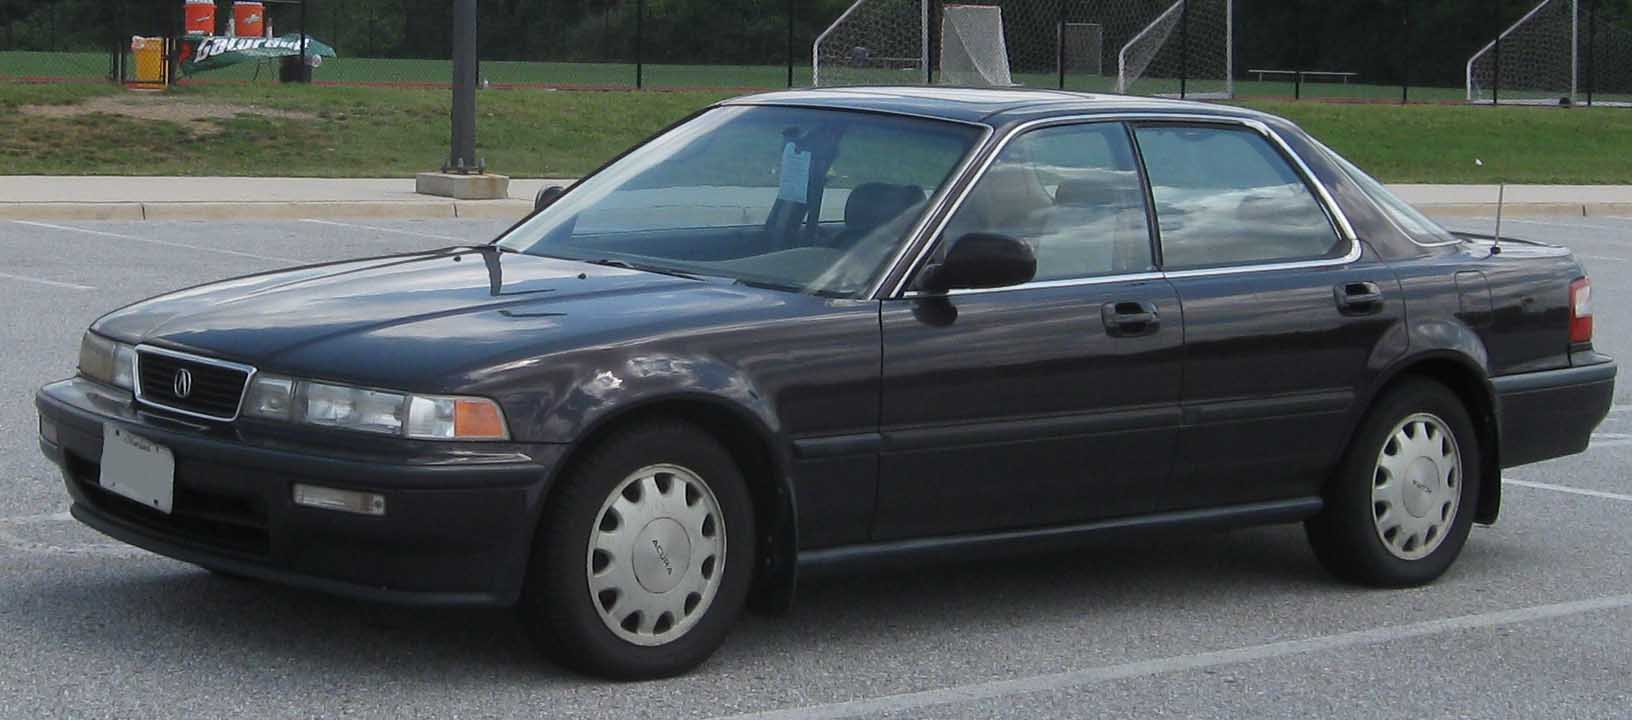 File:Acura-Vigor .jpg - Wikipedia